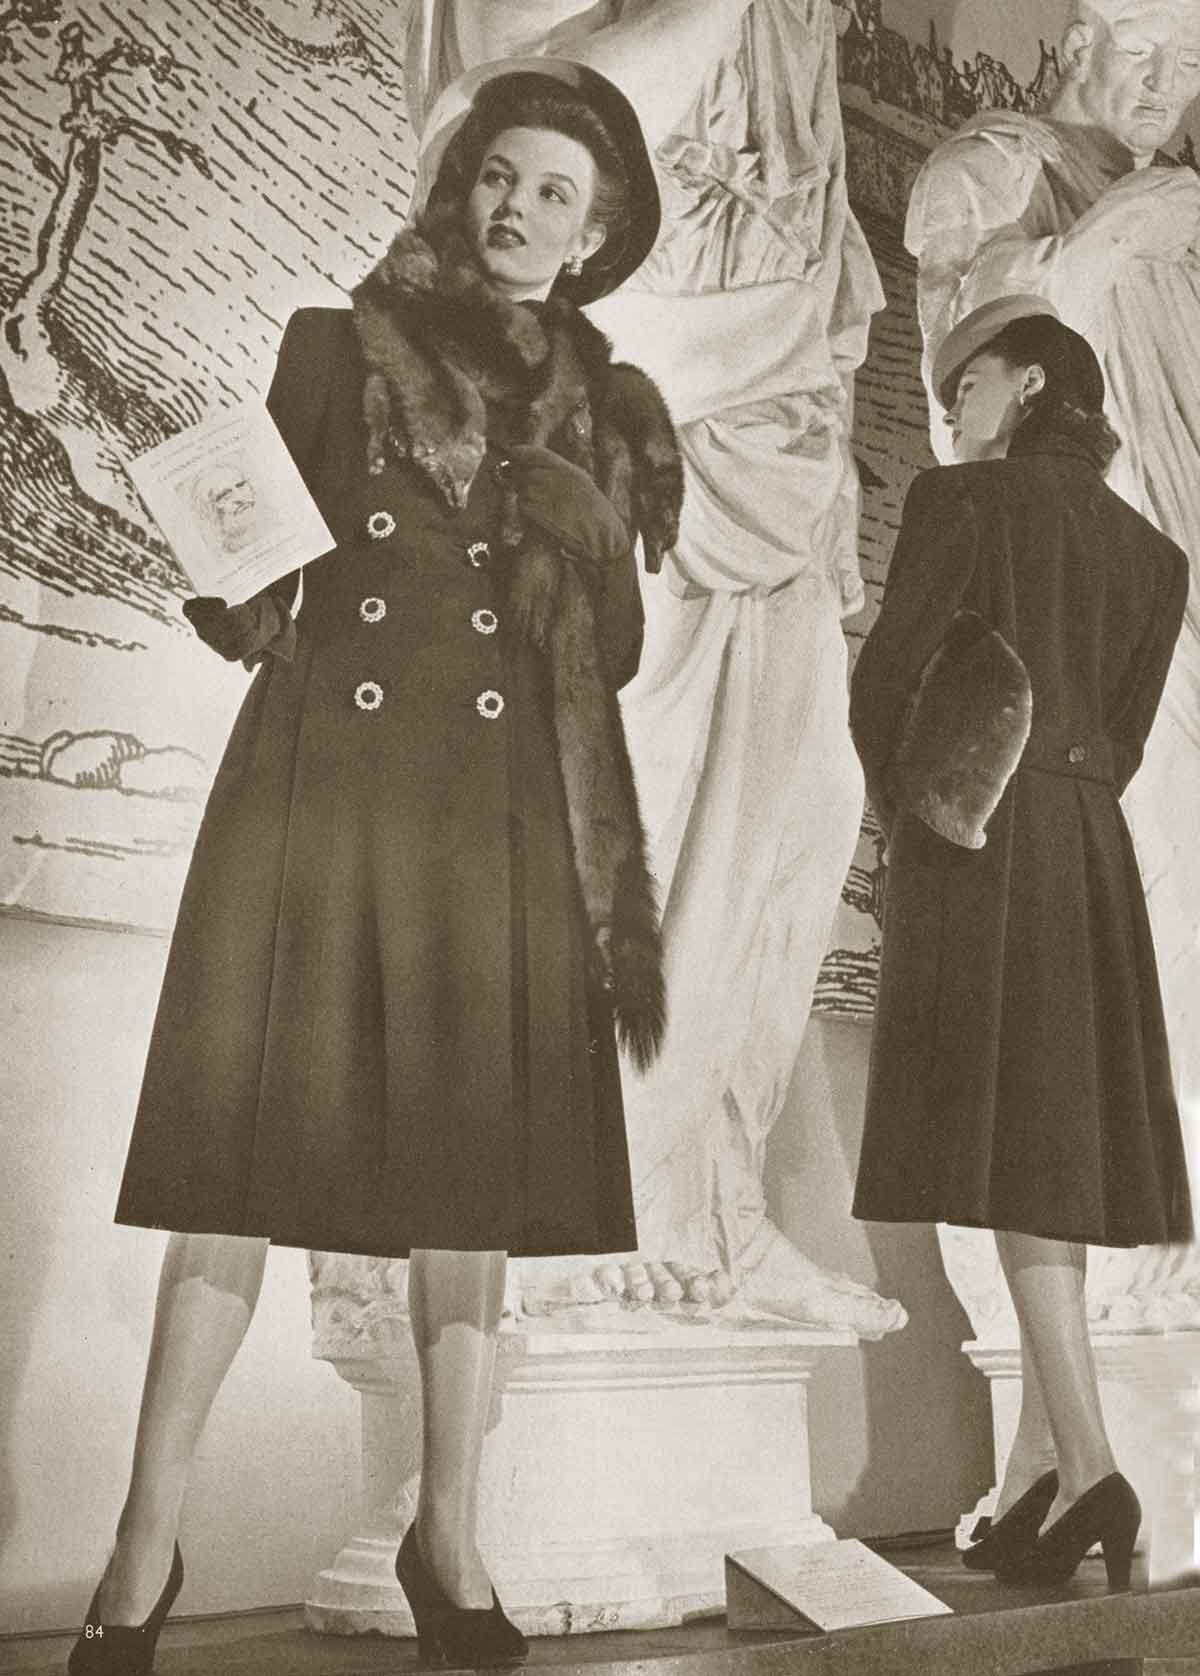 1940 Vogue Fashion - Winter Coats and Dresses | 1940s ...